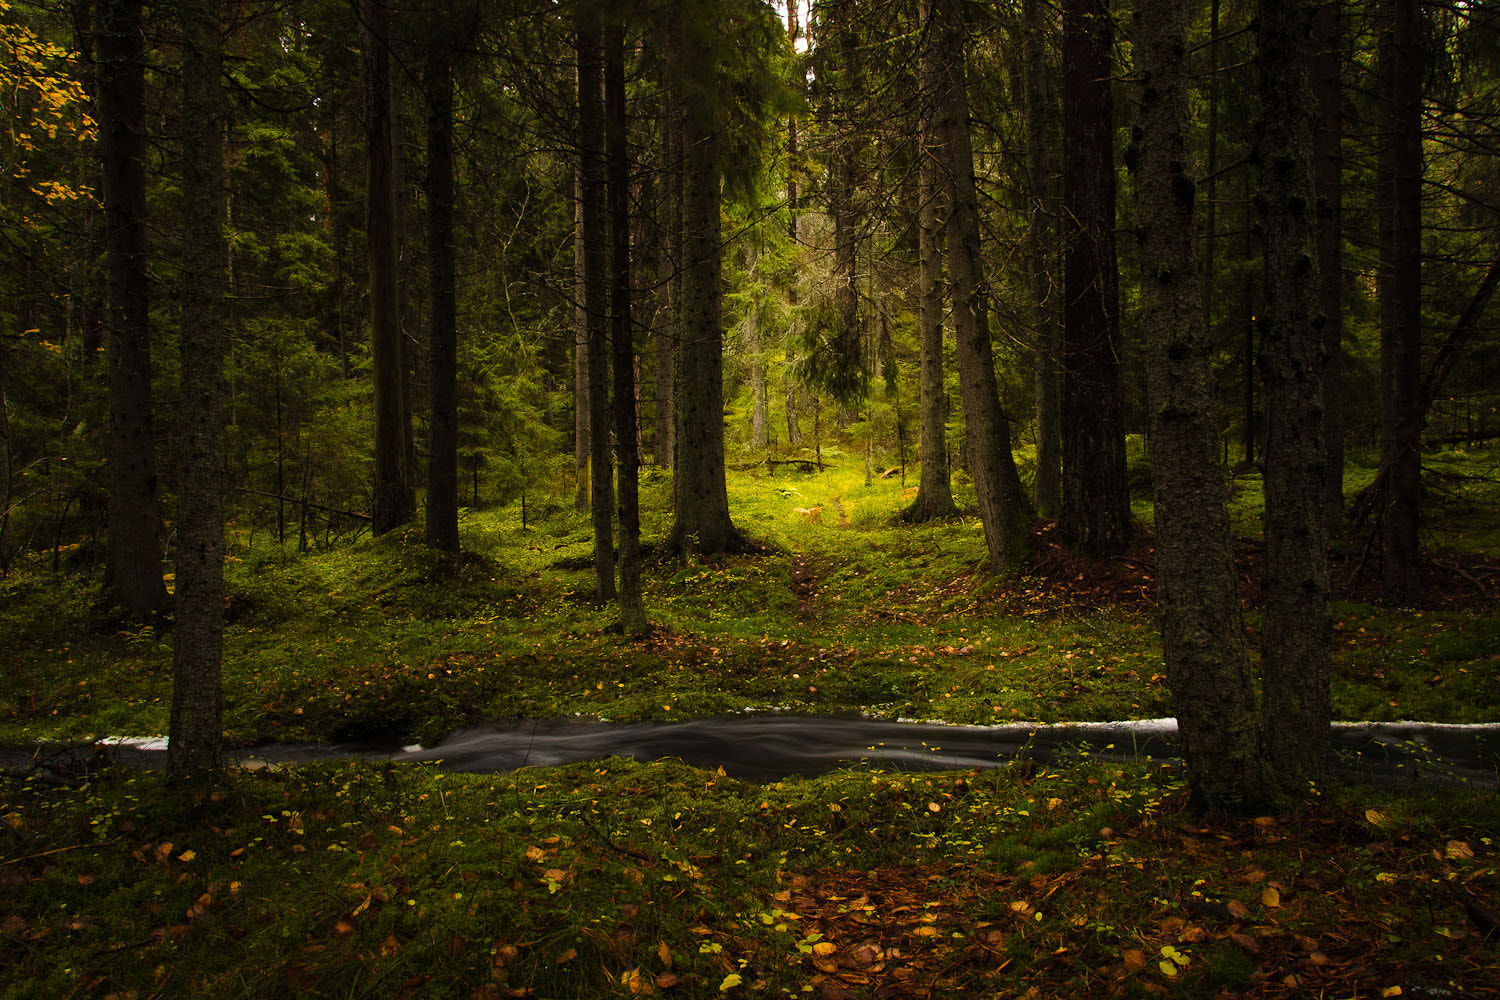 Photograph A light place in the forest by Ulf Bjolin on 500px